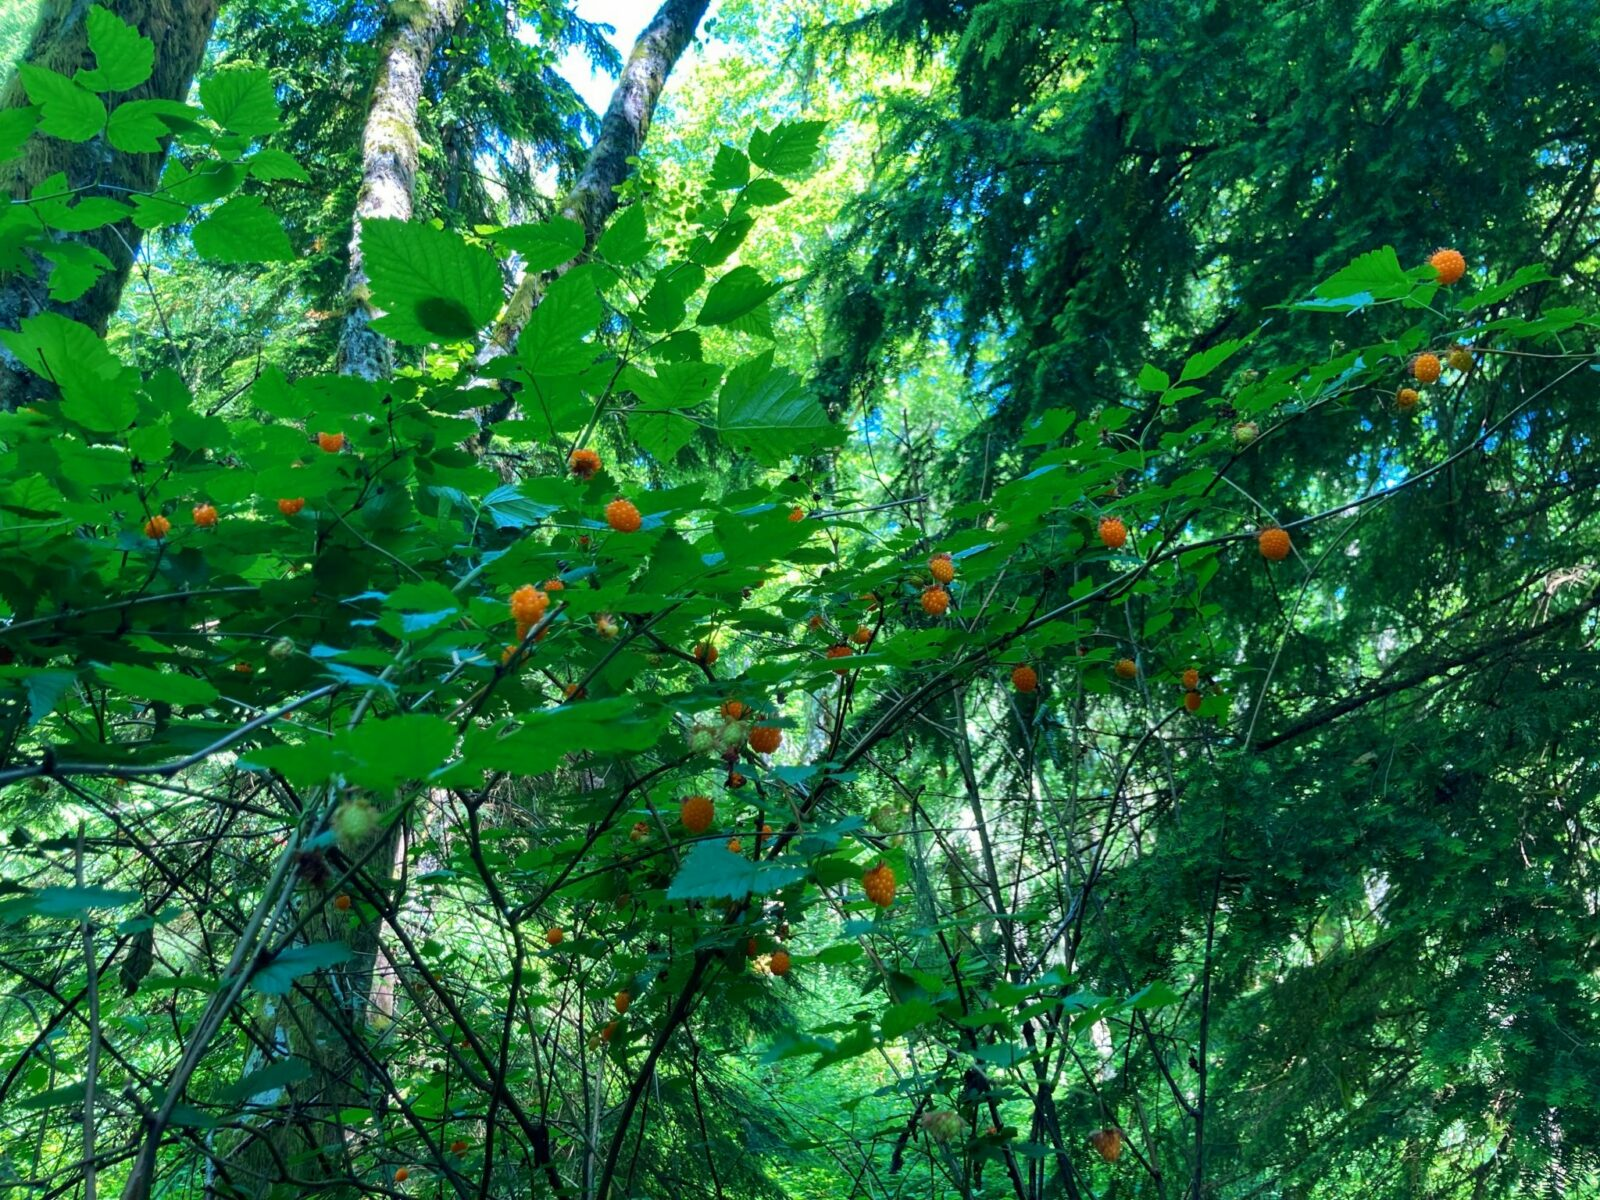 A forest canopy is covered by salmonberry bushes with bright orange berries on them